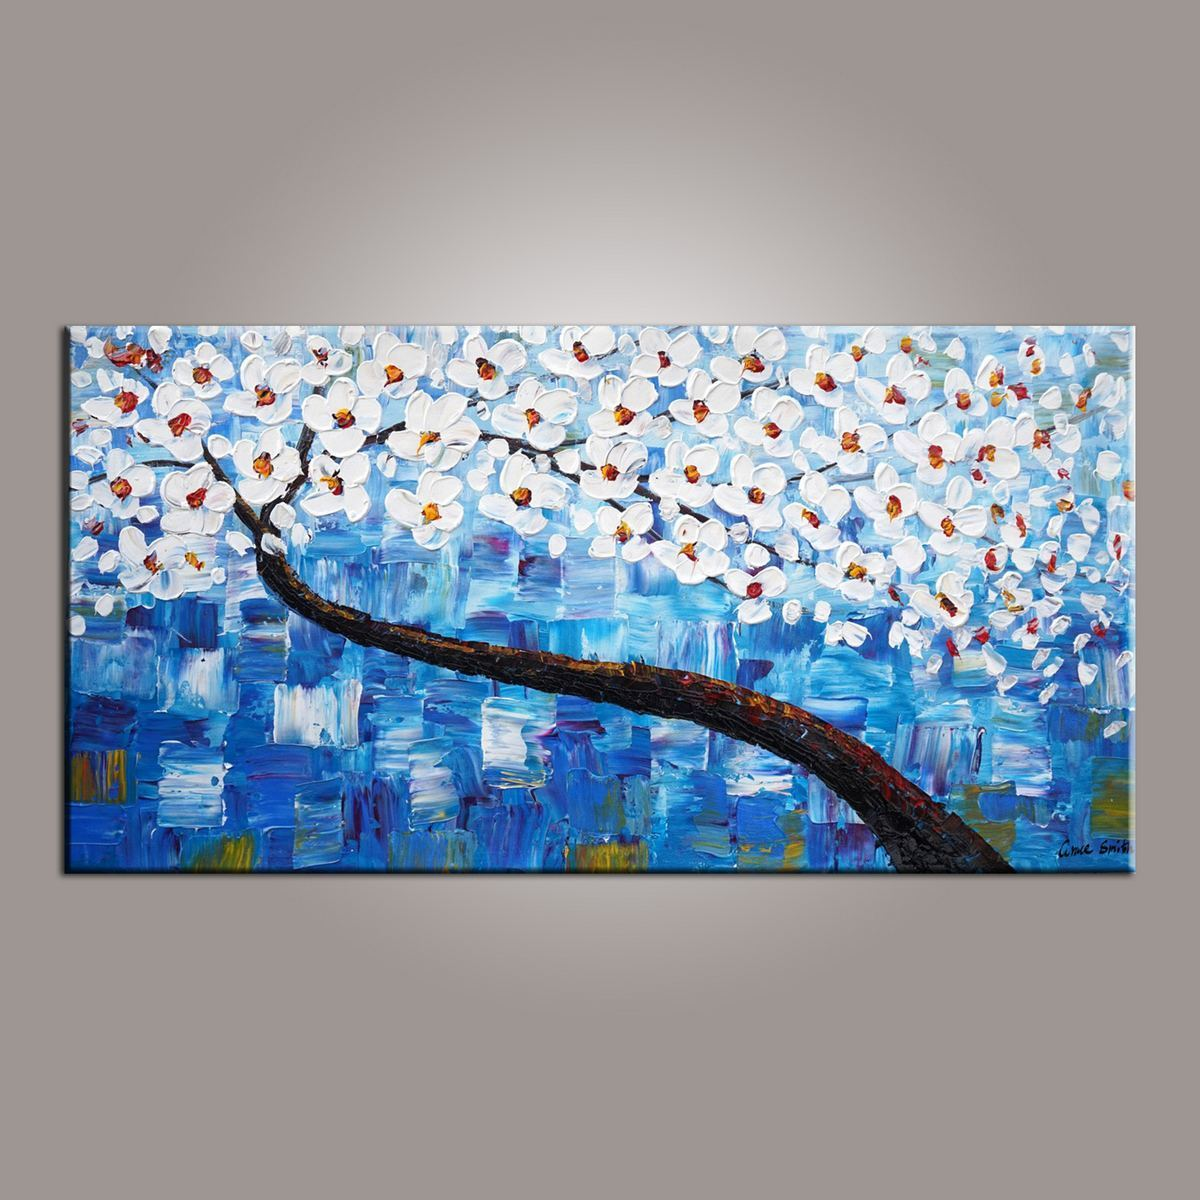 Canvas Art, Blue Flower Tree Painting, Abstract Painting, Painting on Sale, Dining Room Wall Art, Art on Canvas, Modern Art, Contemporary Art - artworkcanvas